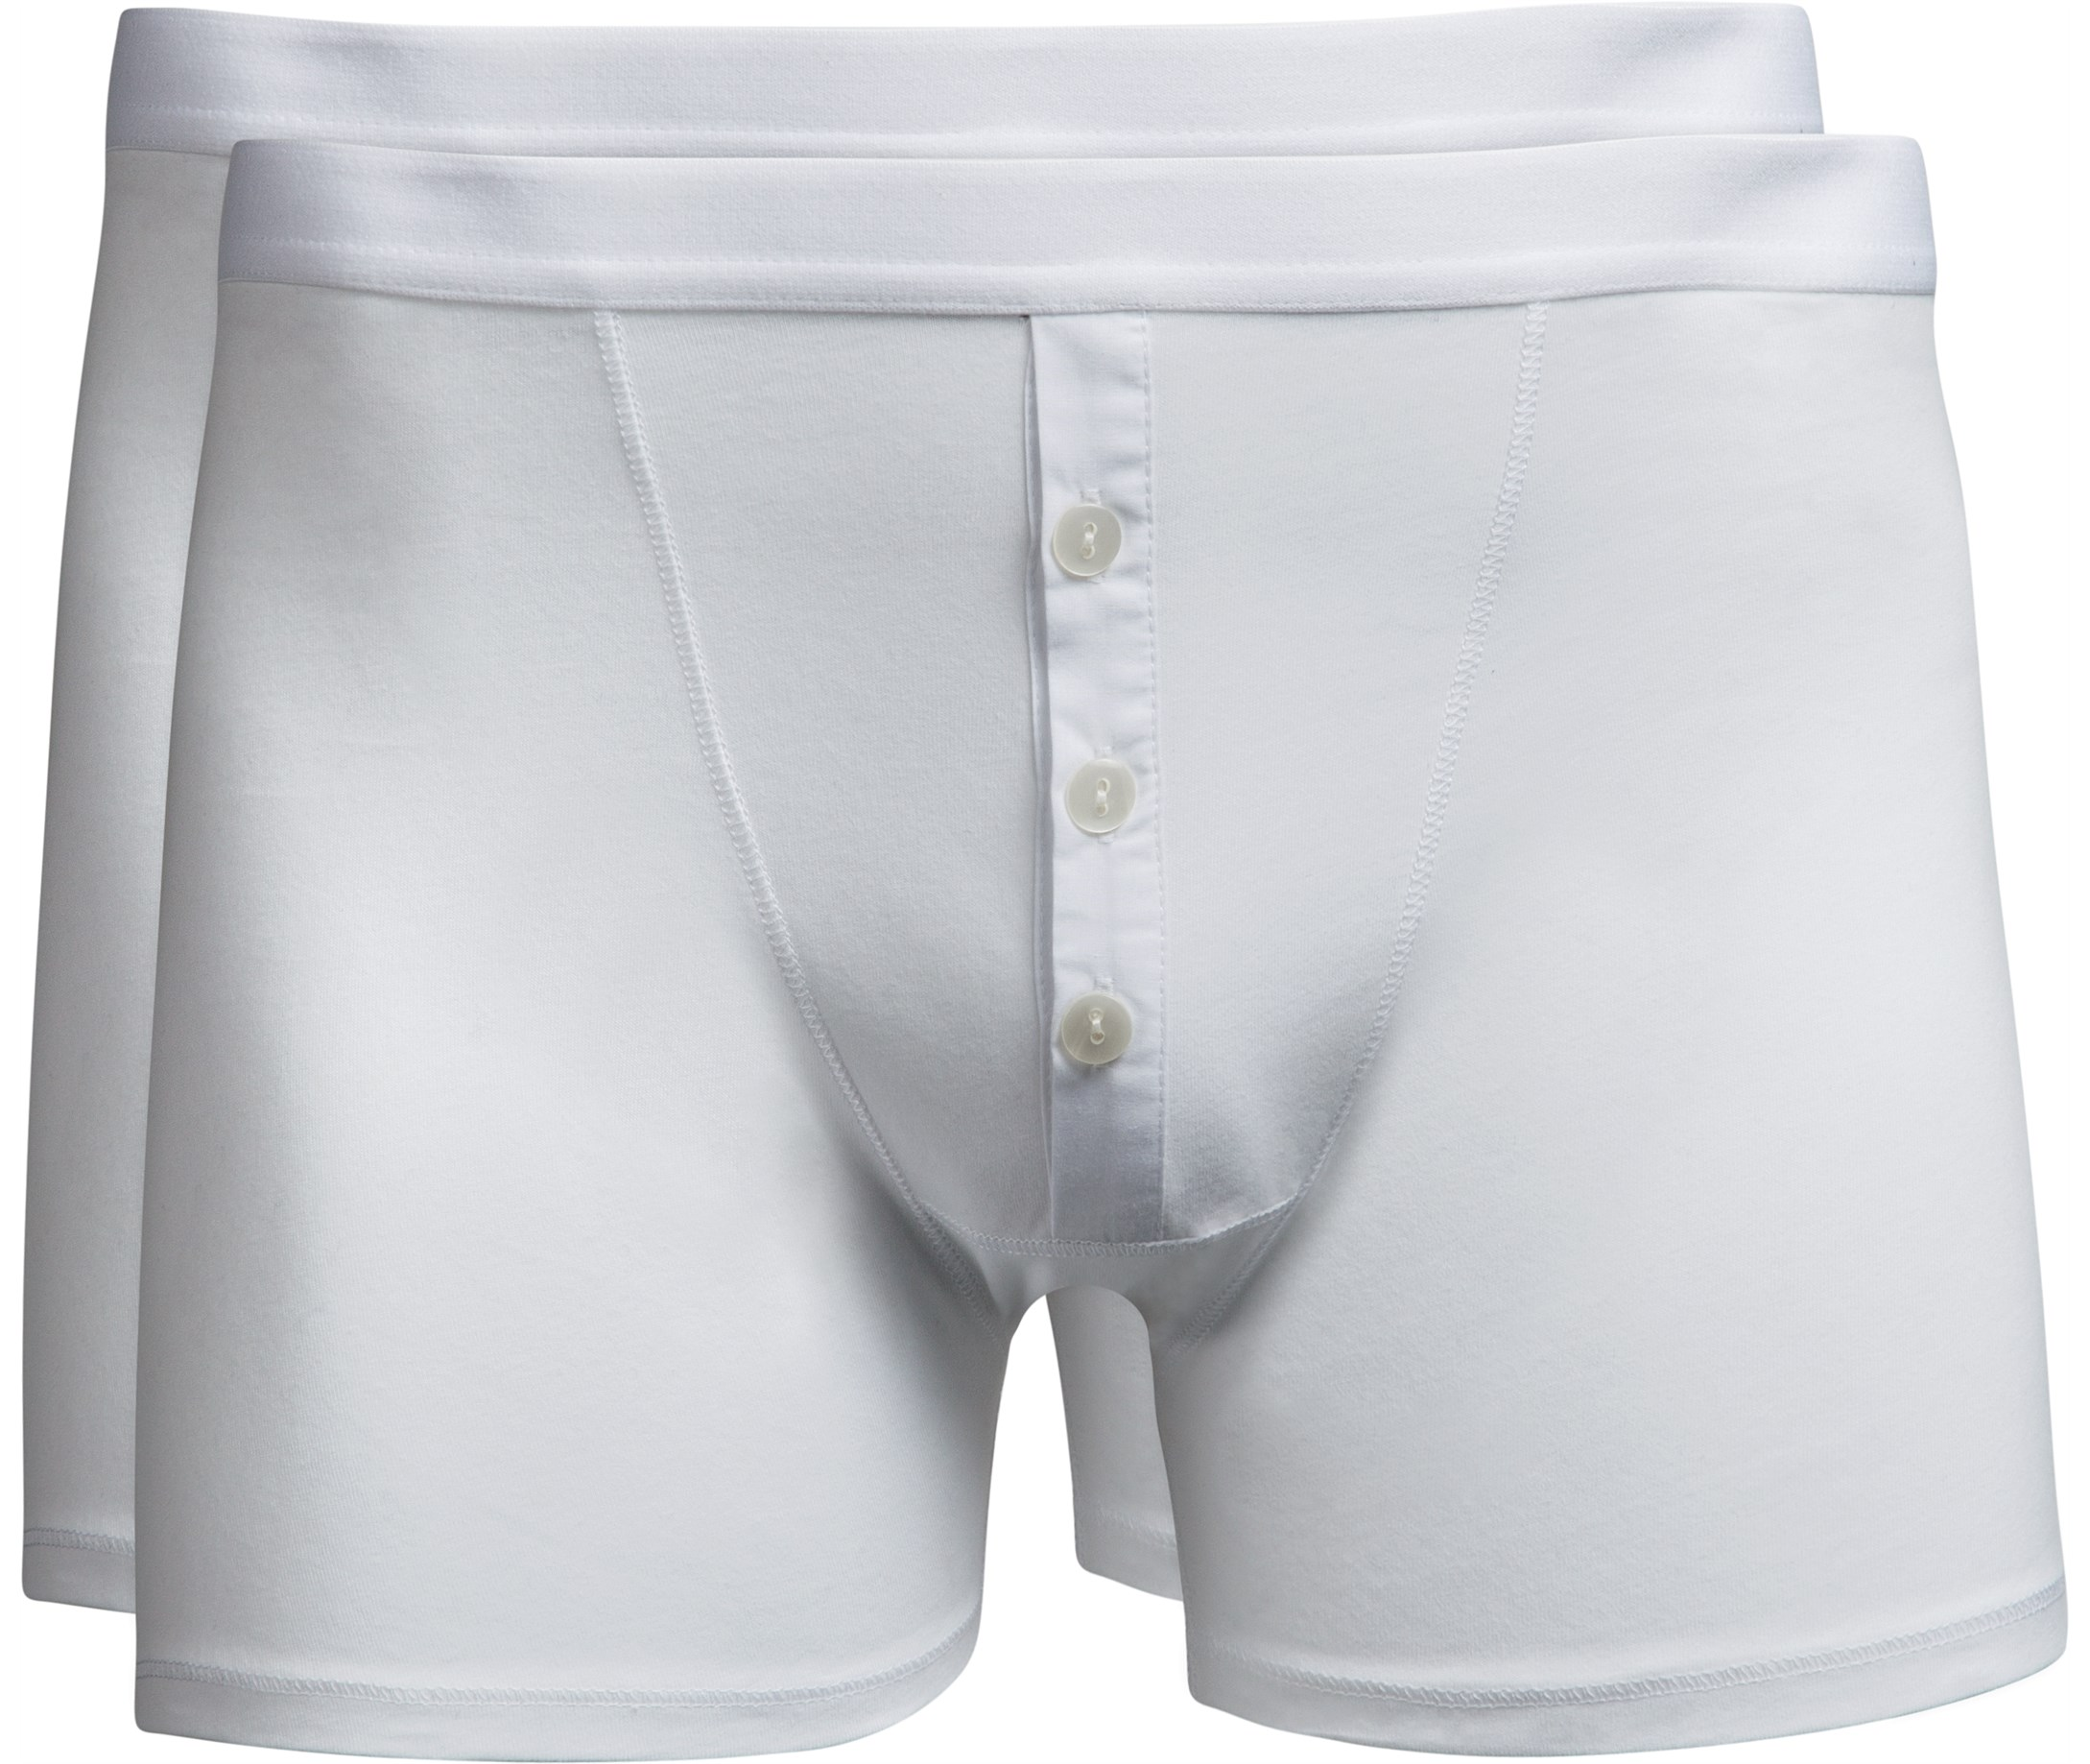 Free Shipping! White Boxers - Men's Underwear and Boxers at HisRoom.